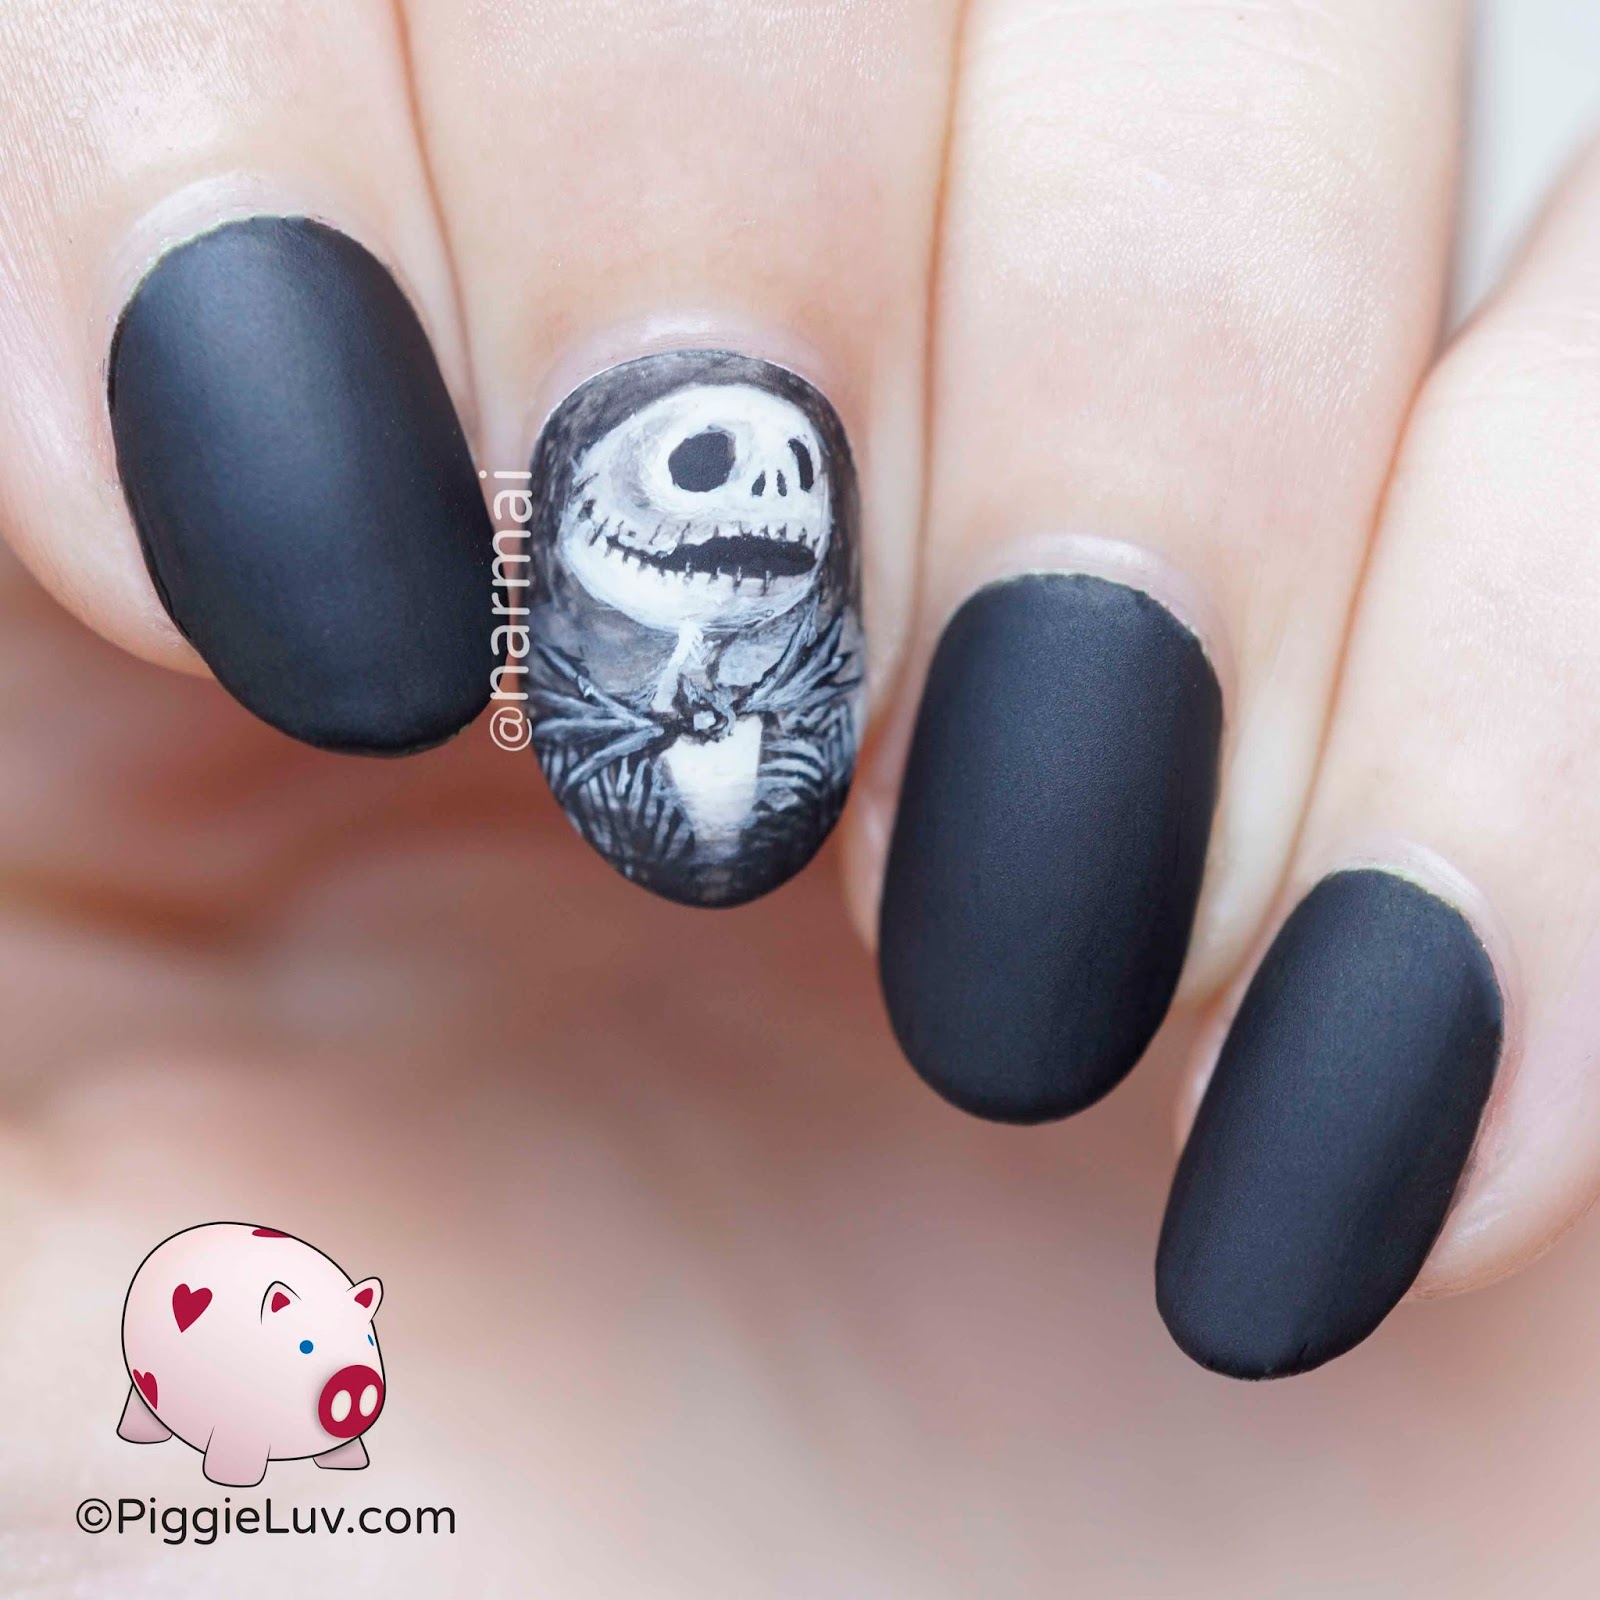 Piggieluv Jack Skellington Nail Art For Halloween